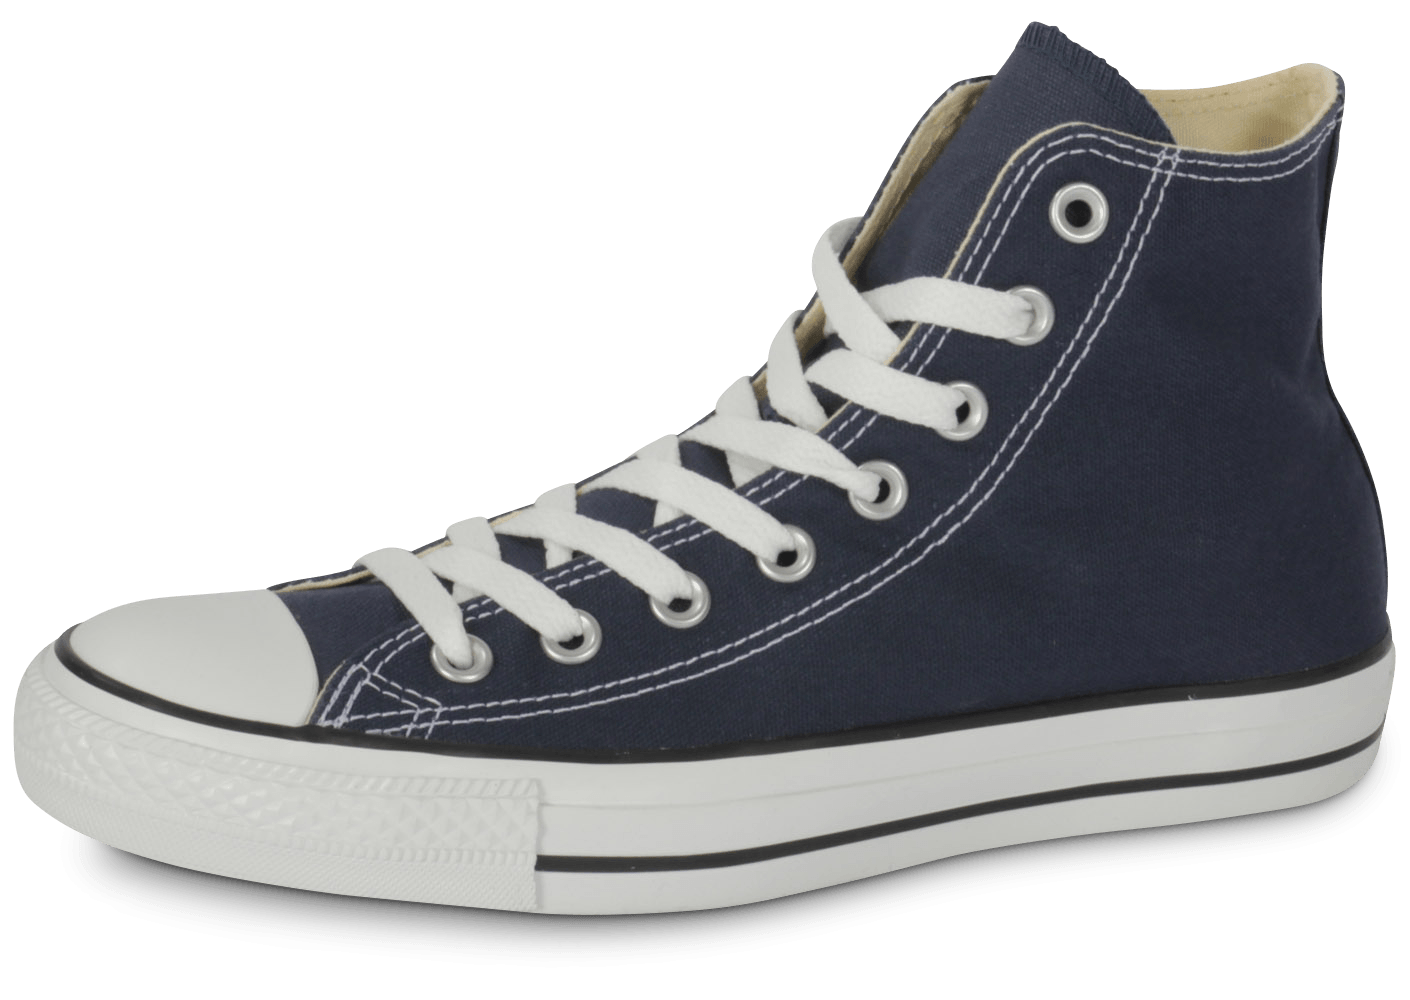 converse chuck taylor all star hi marine chaussures homme chausport. Black Bedroom Furniture Sets. Home Design Ideas